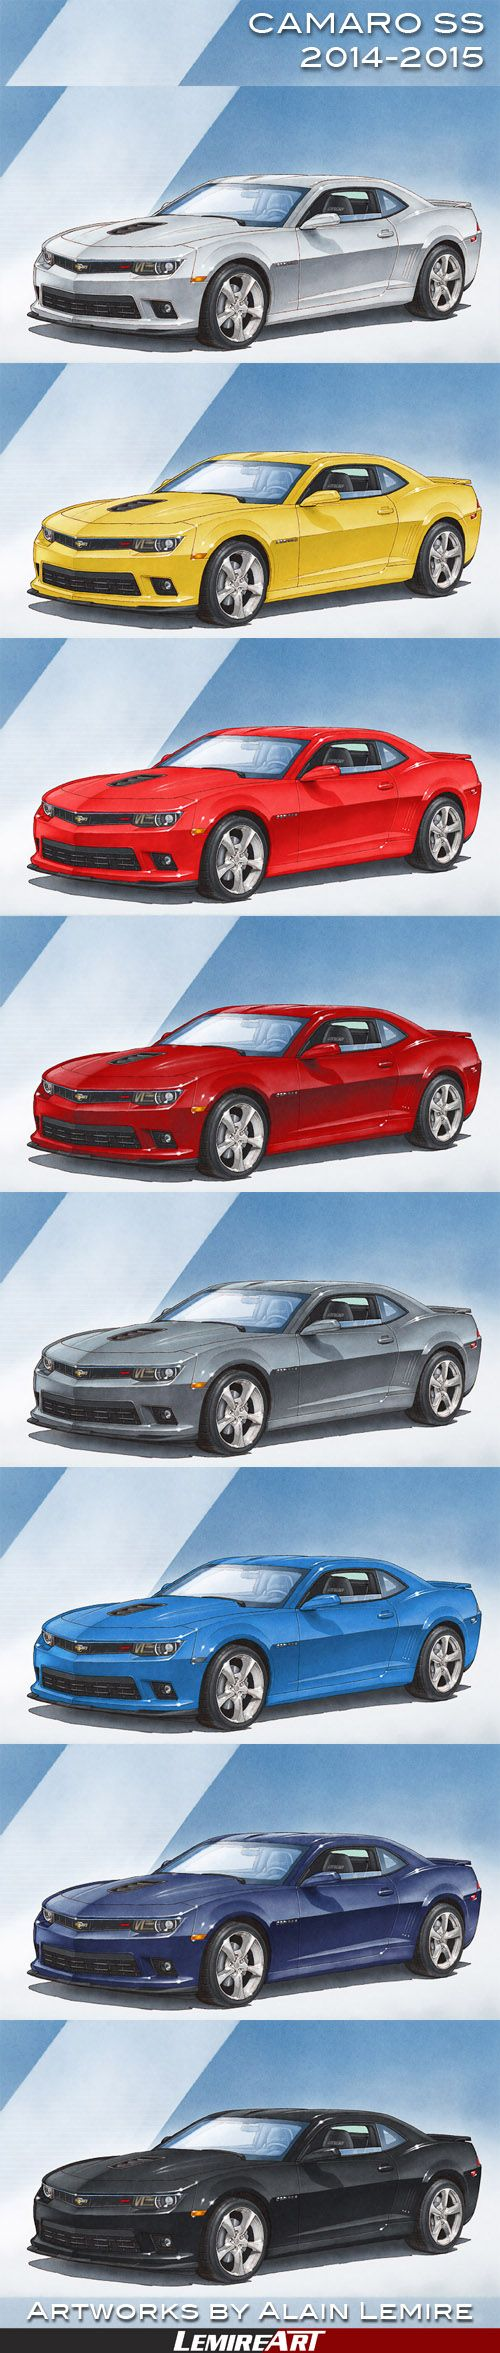 To see and why not, to buy the CAMARO SS 2014-2015 art print: https://www.lemireart.com/automotive-art/2014-2015 camaro-ss/